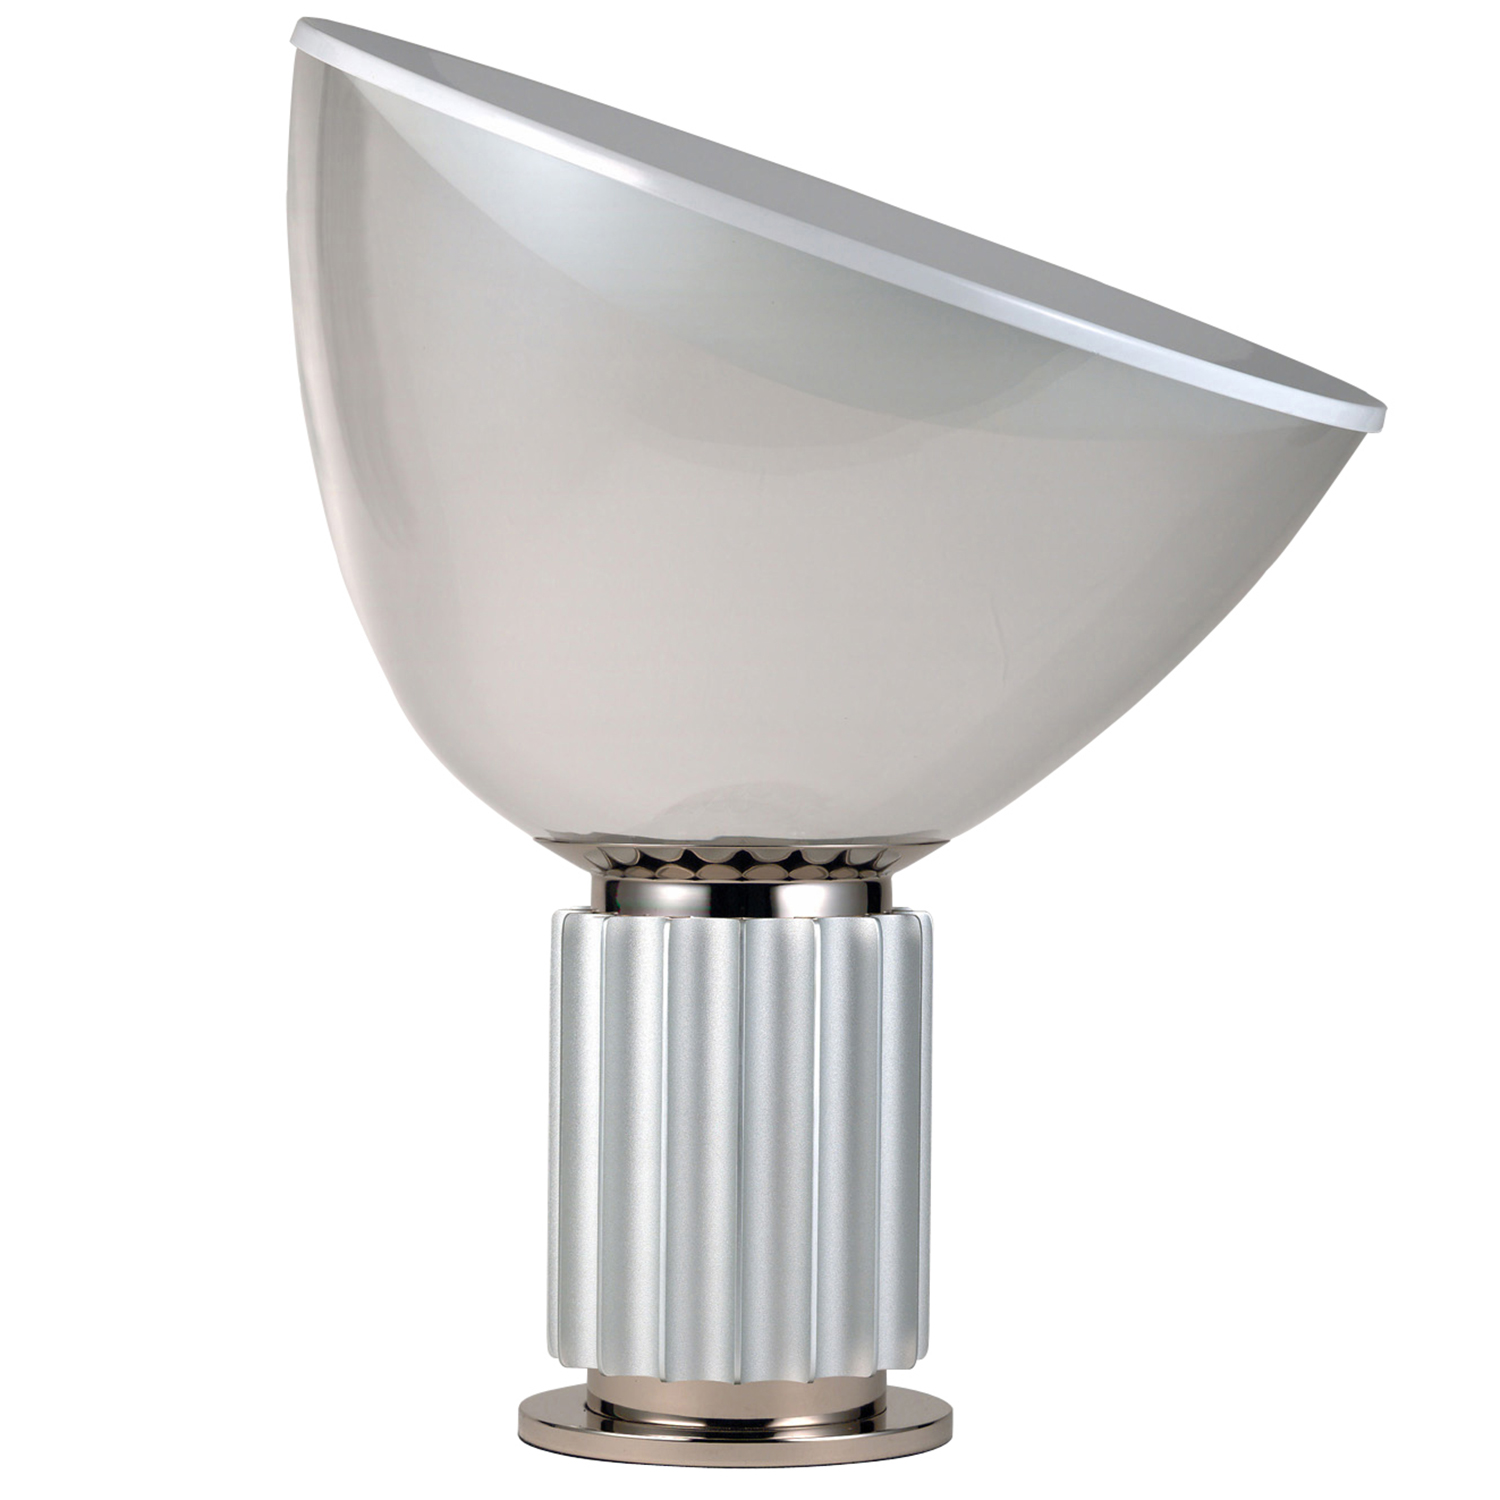 Taccia LED small bordslampa, silver